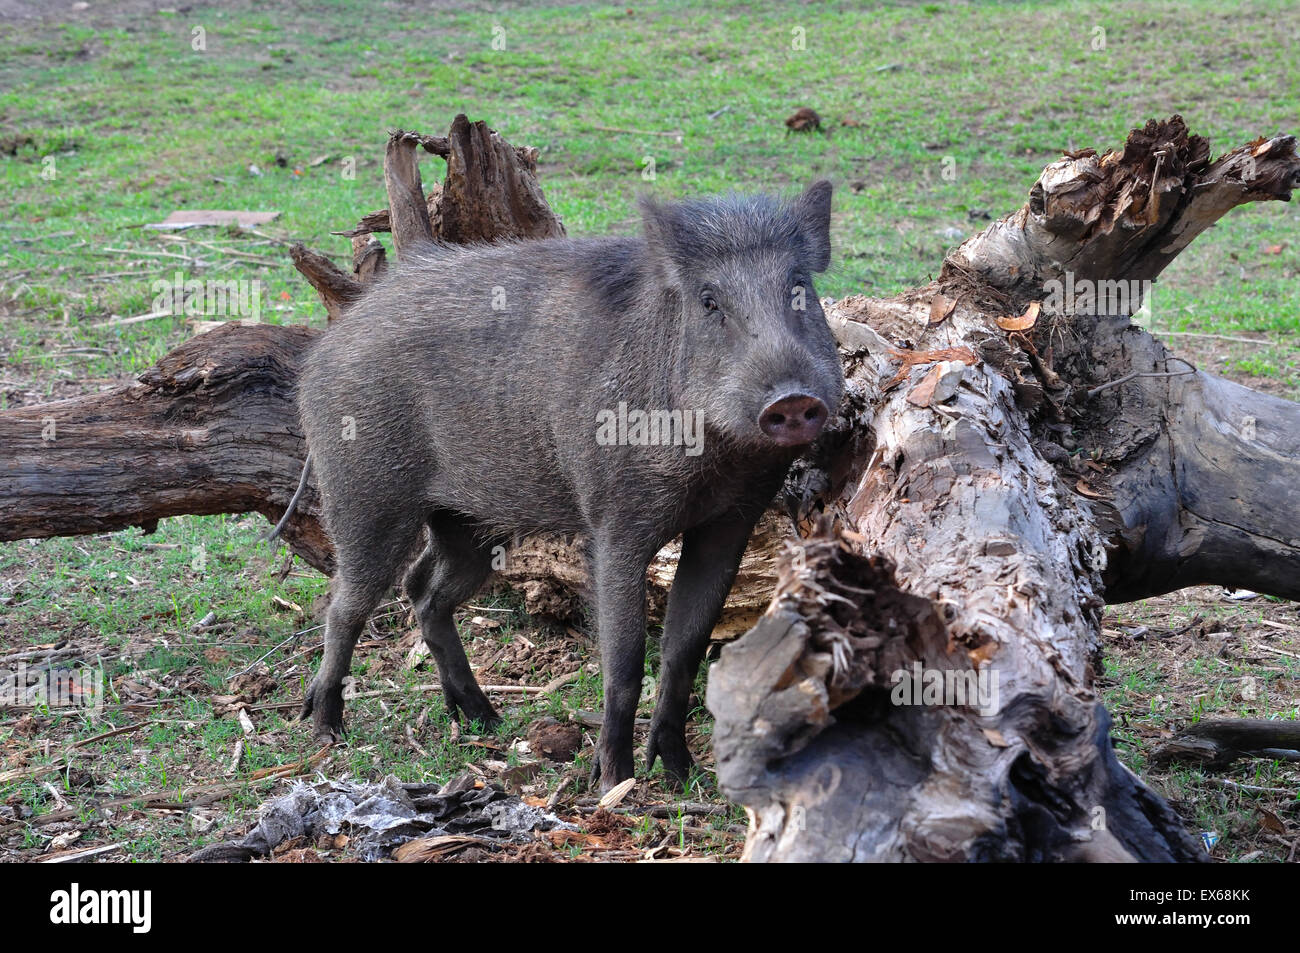 Indian Wild Boar - Stock Image